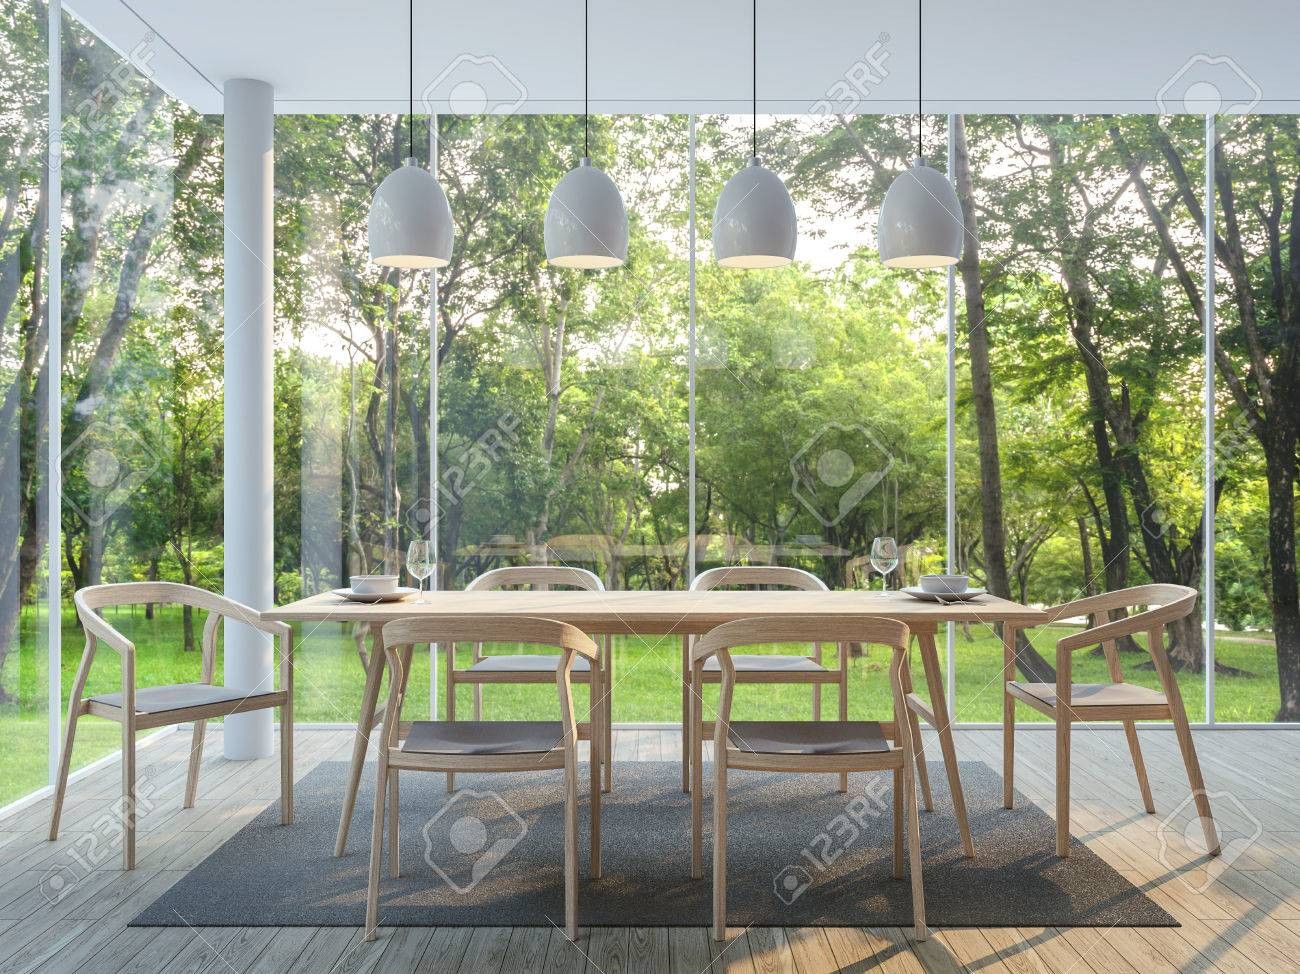 Modern dining room in the glass house 3d render image There are wooden floor there are large window overlooking to the garden and nature and finished with wood furniture - 82160595